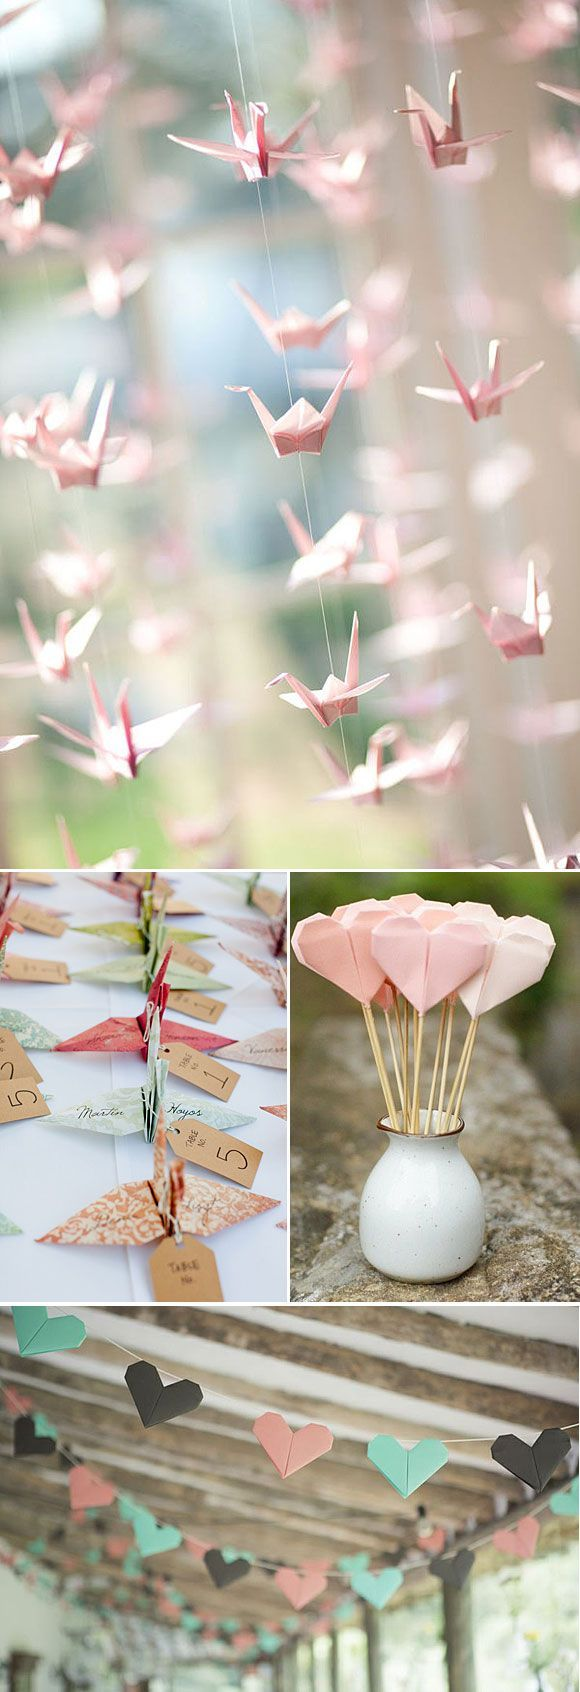 Origami wedding craft DIY mariage